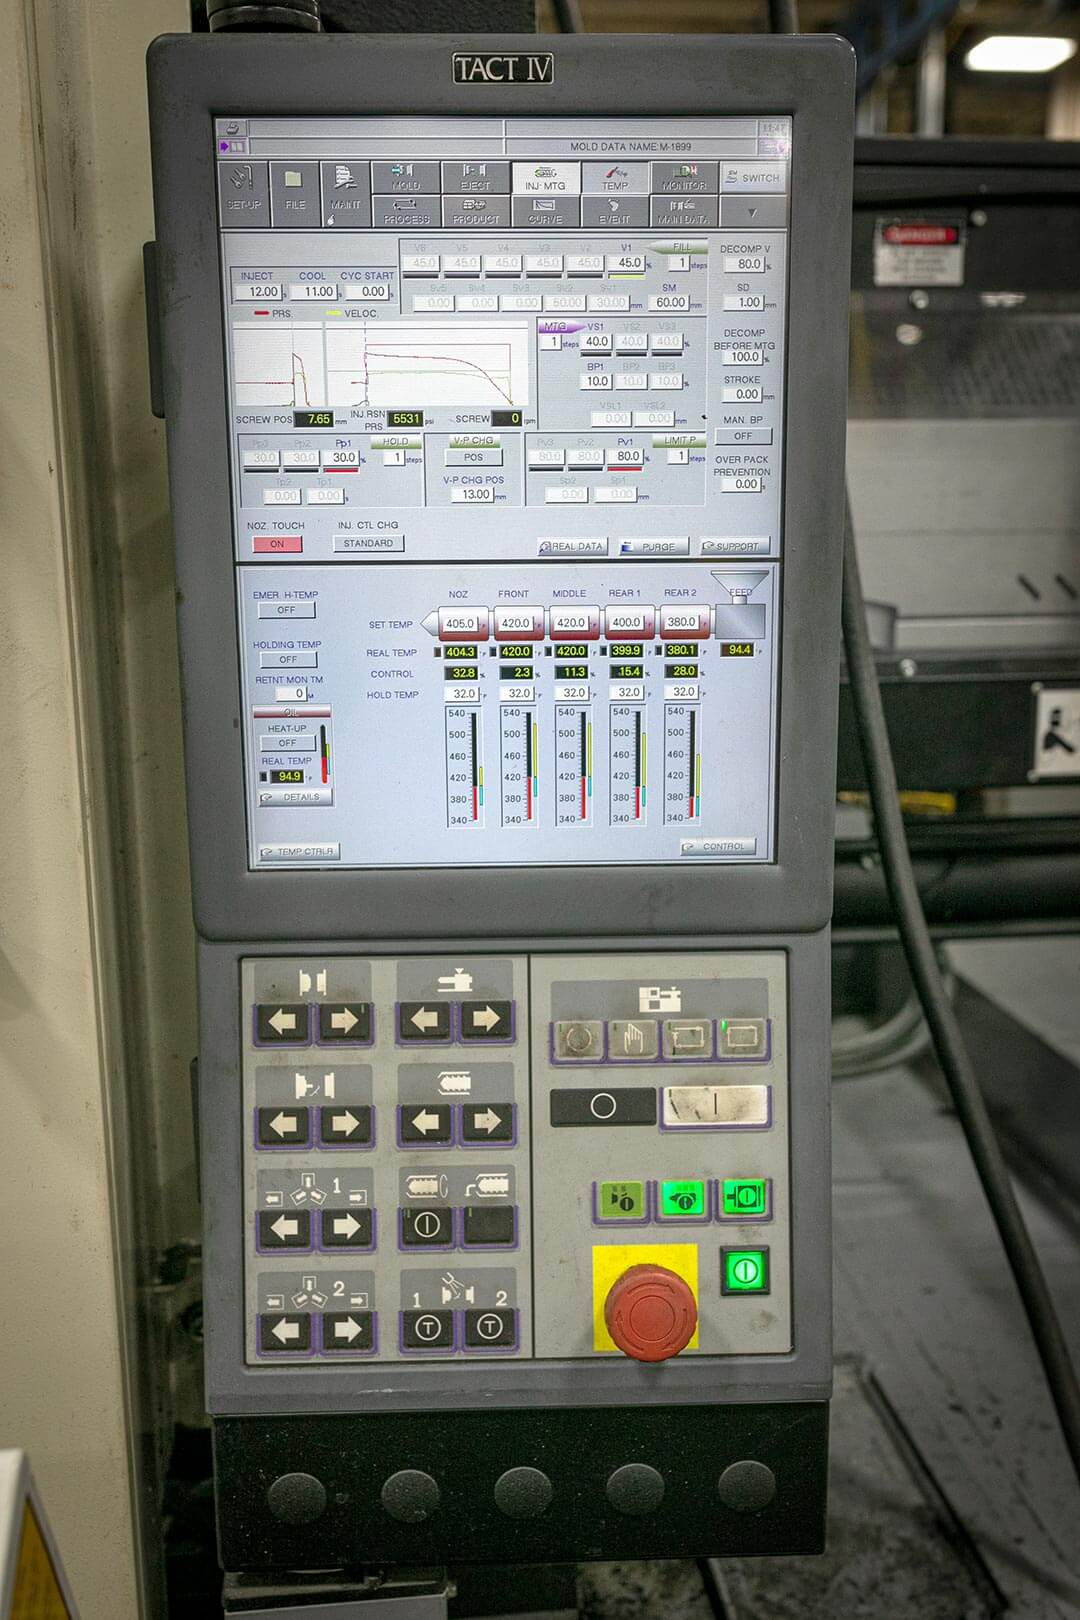 Advanced injection molding machine controllers